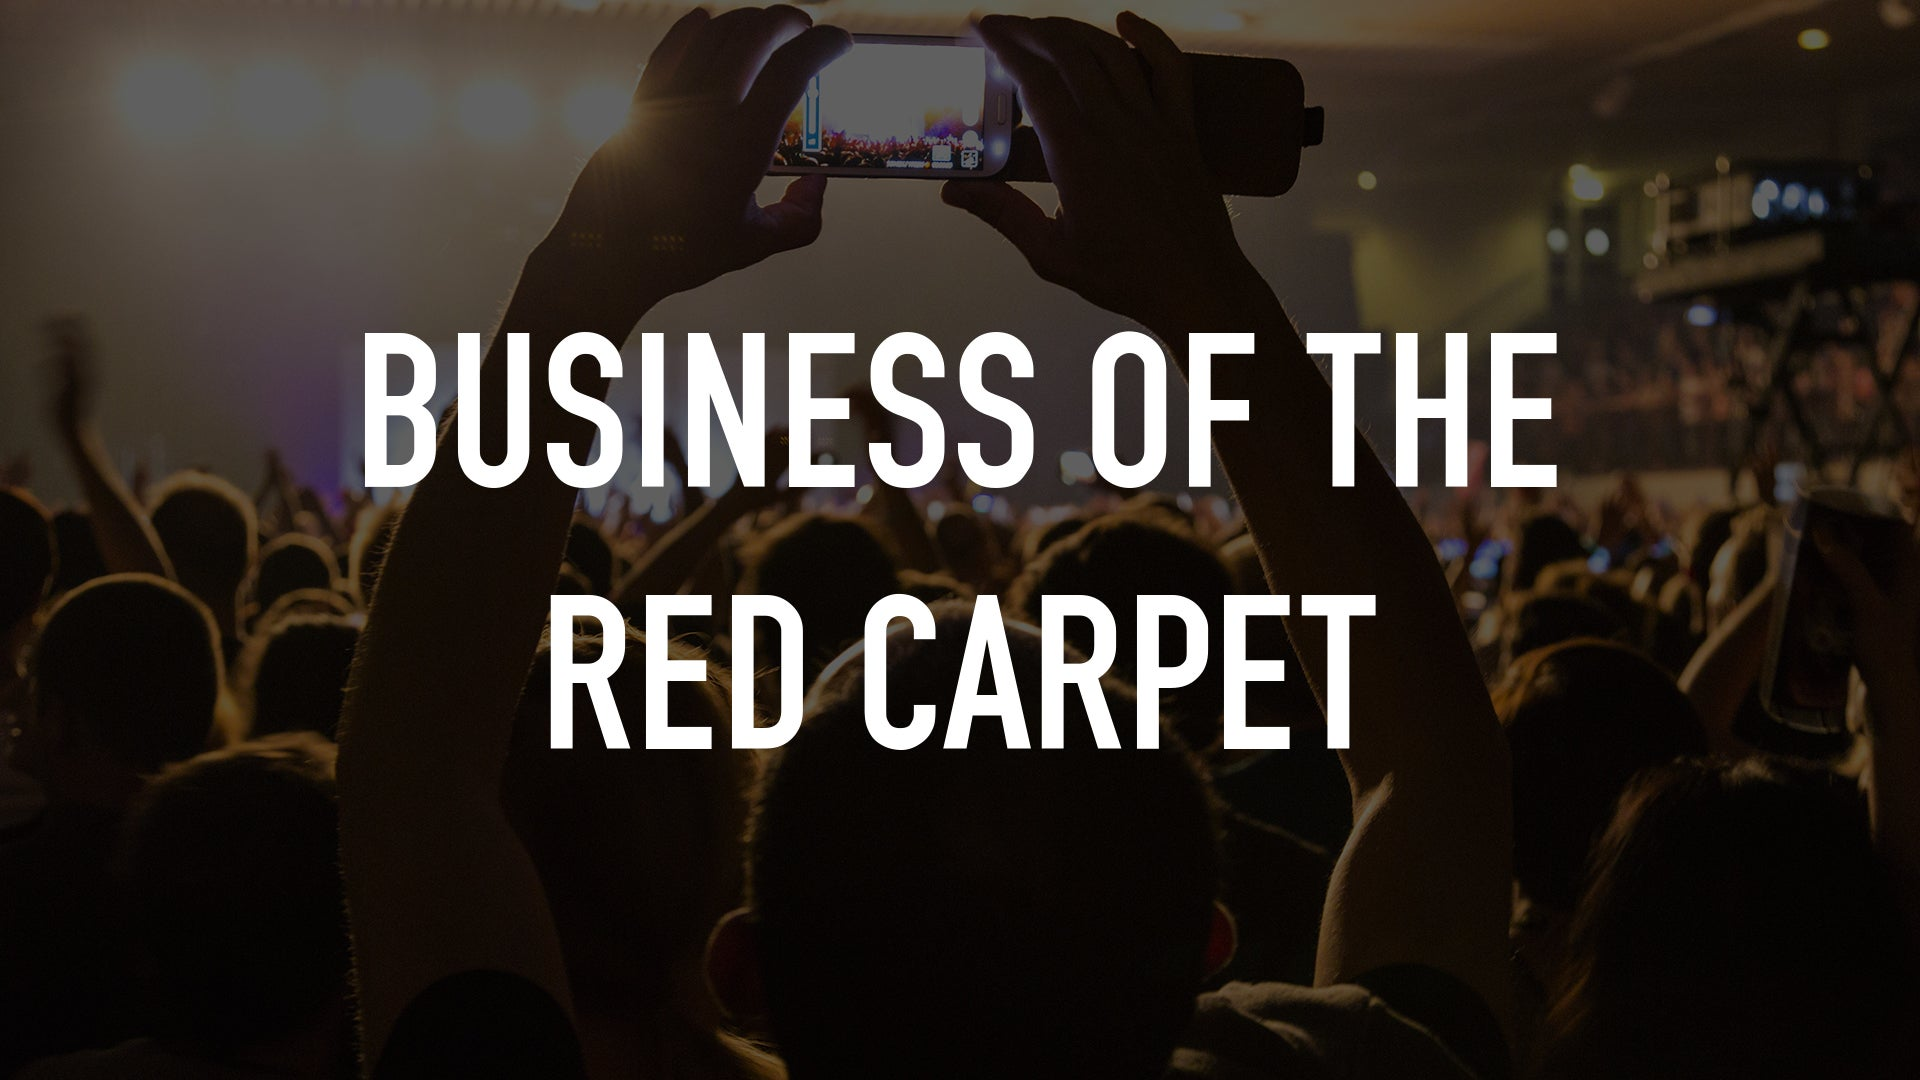 Business of the Red Carpet